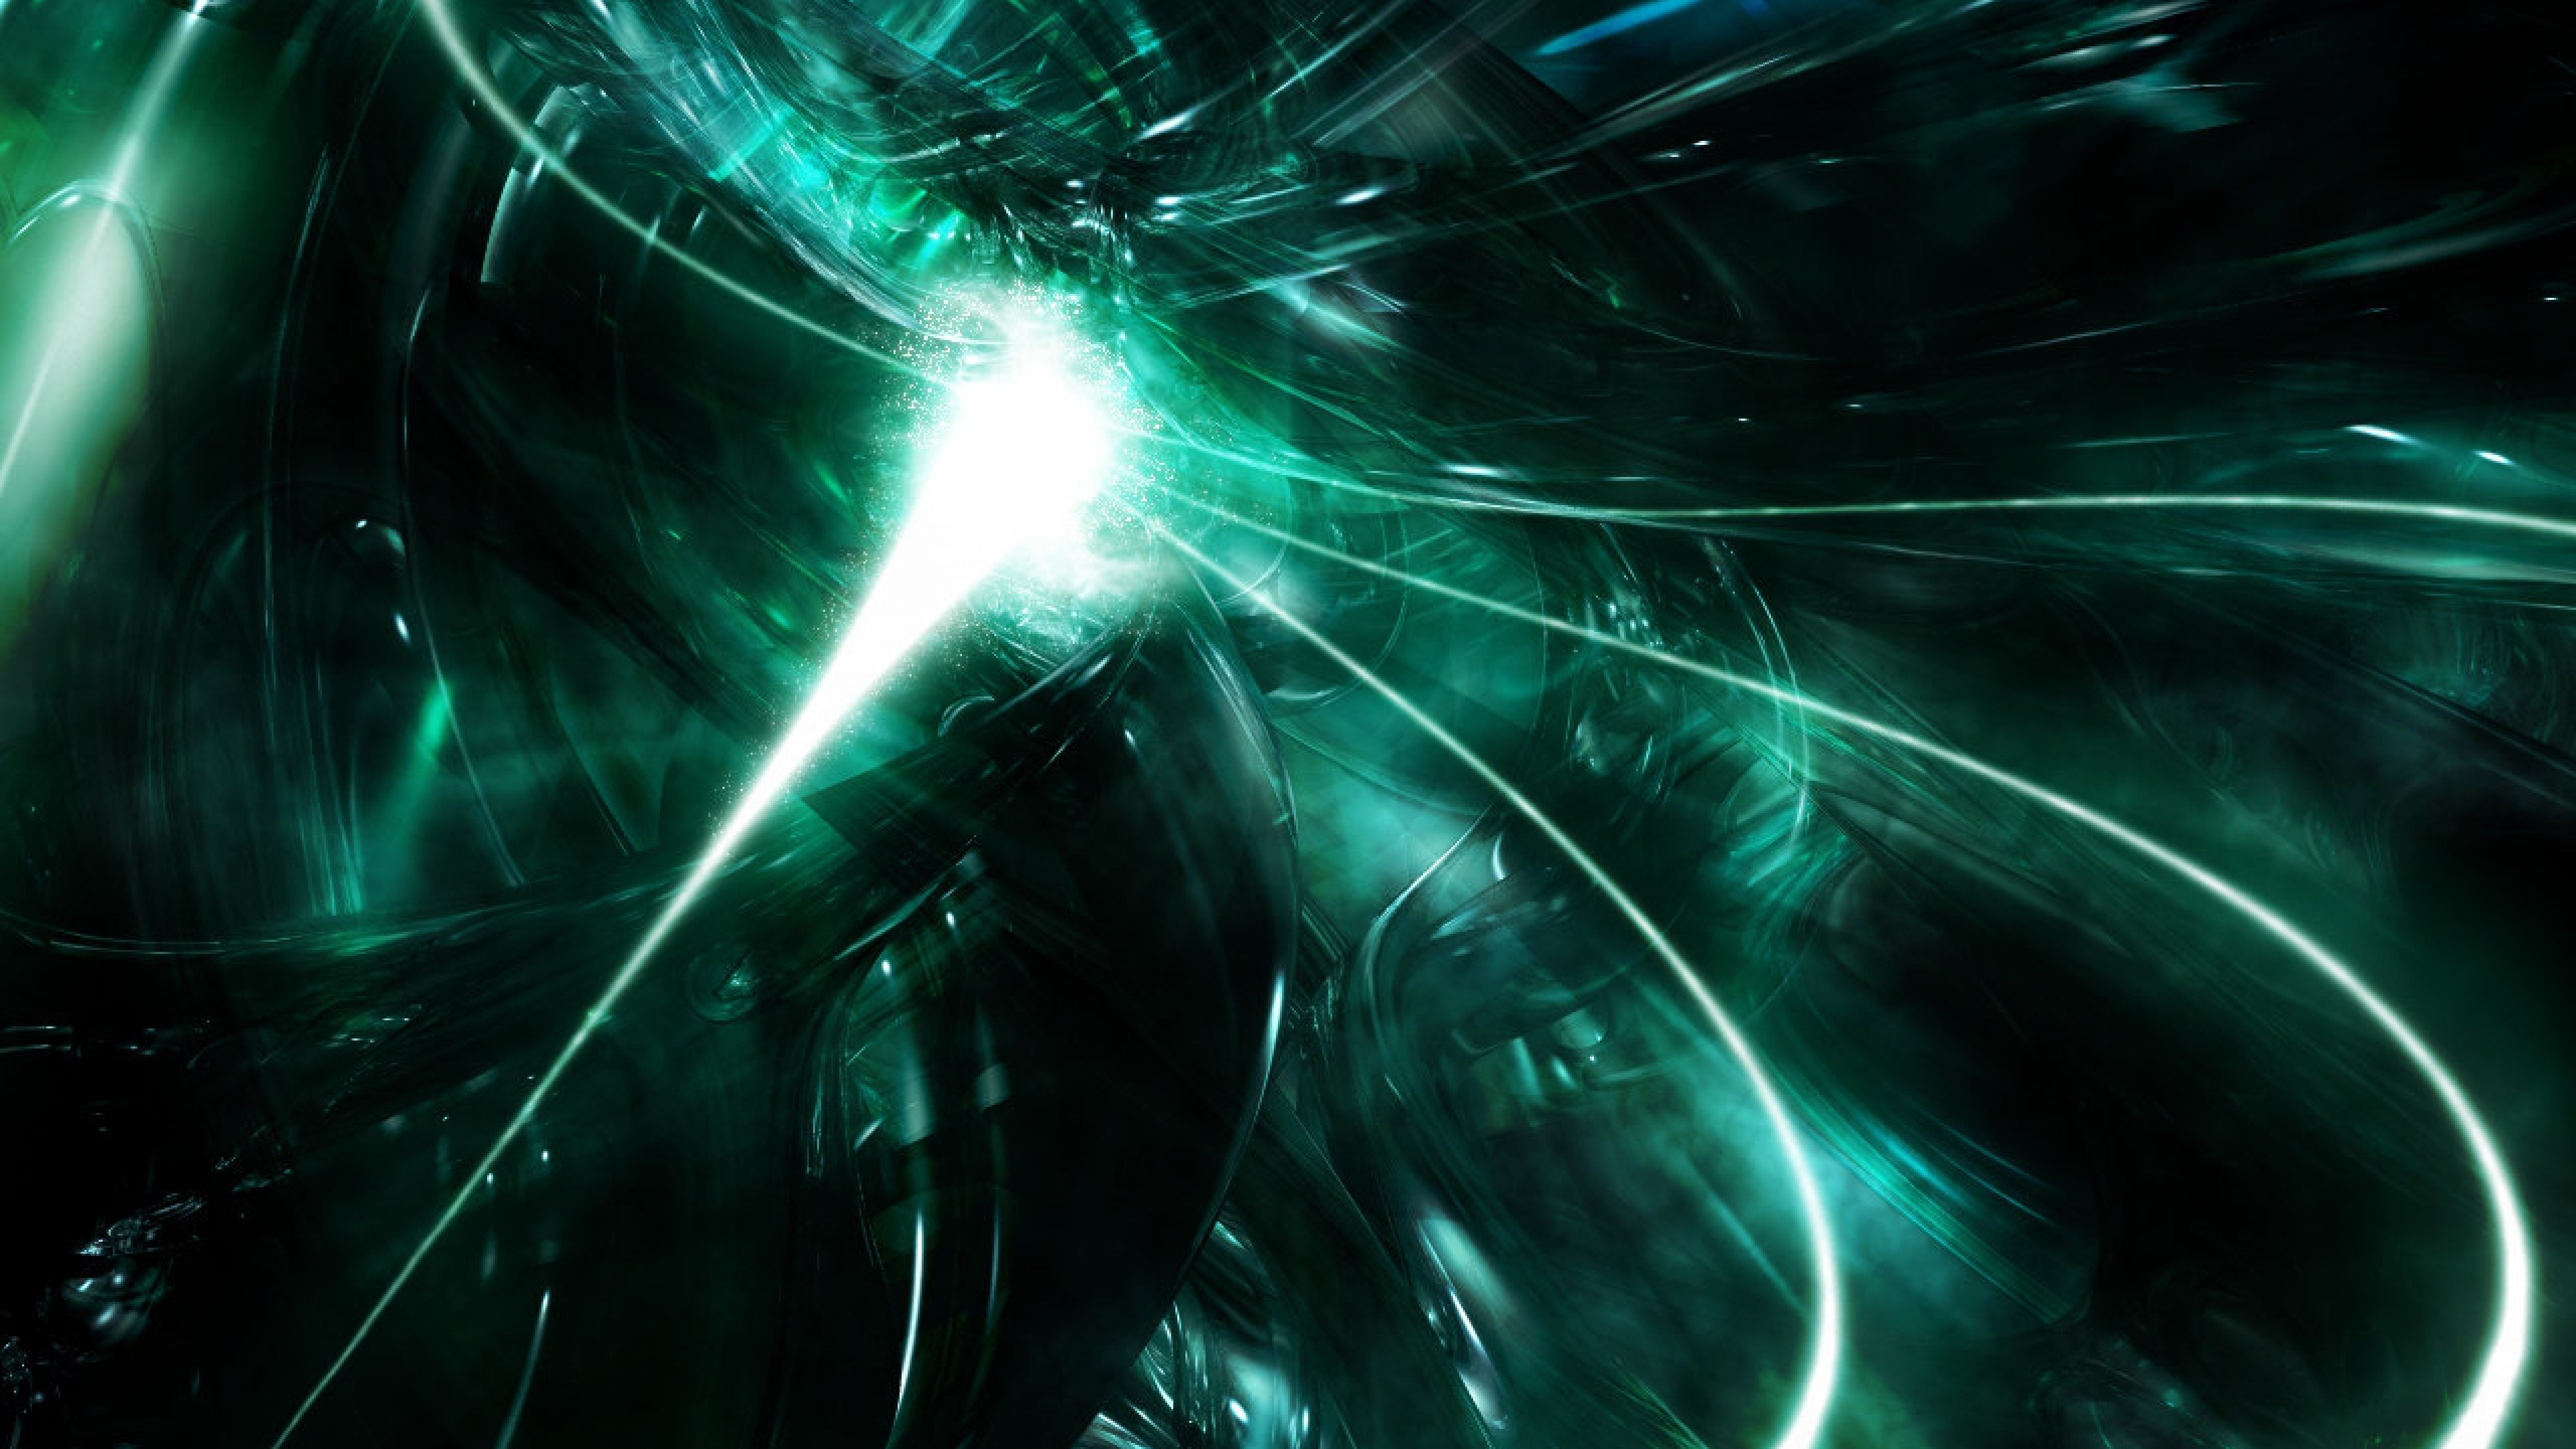 4k Abstract HD Picture Wallpapers 11728   HD Wallpapers Site 3840x2160